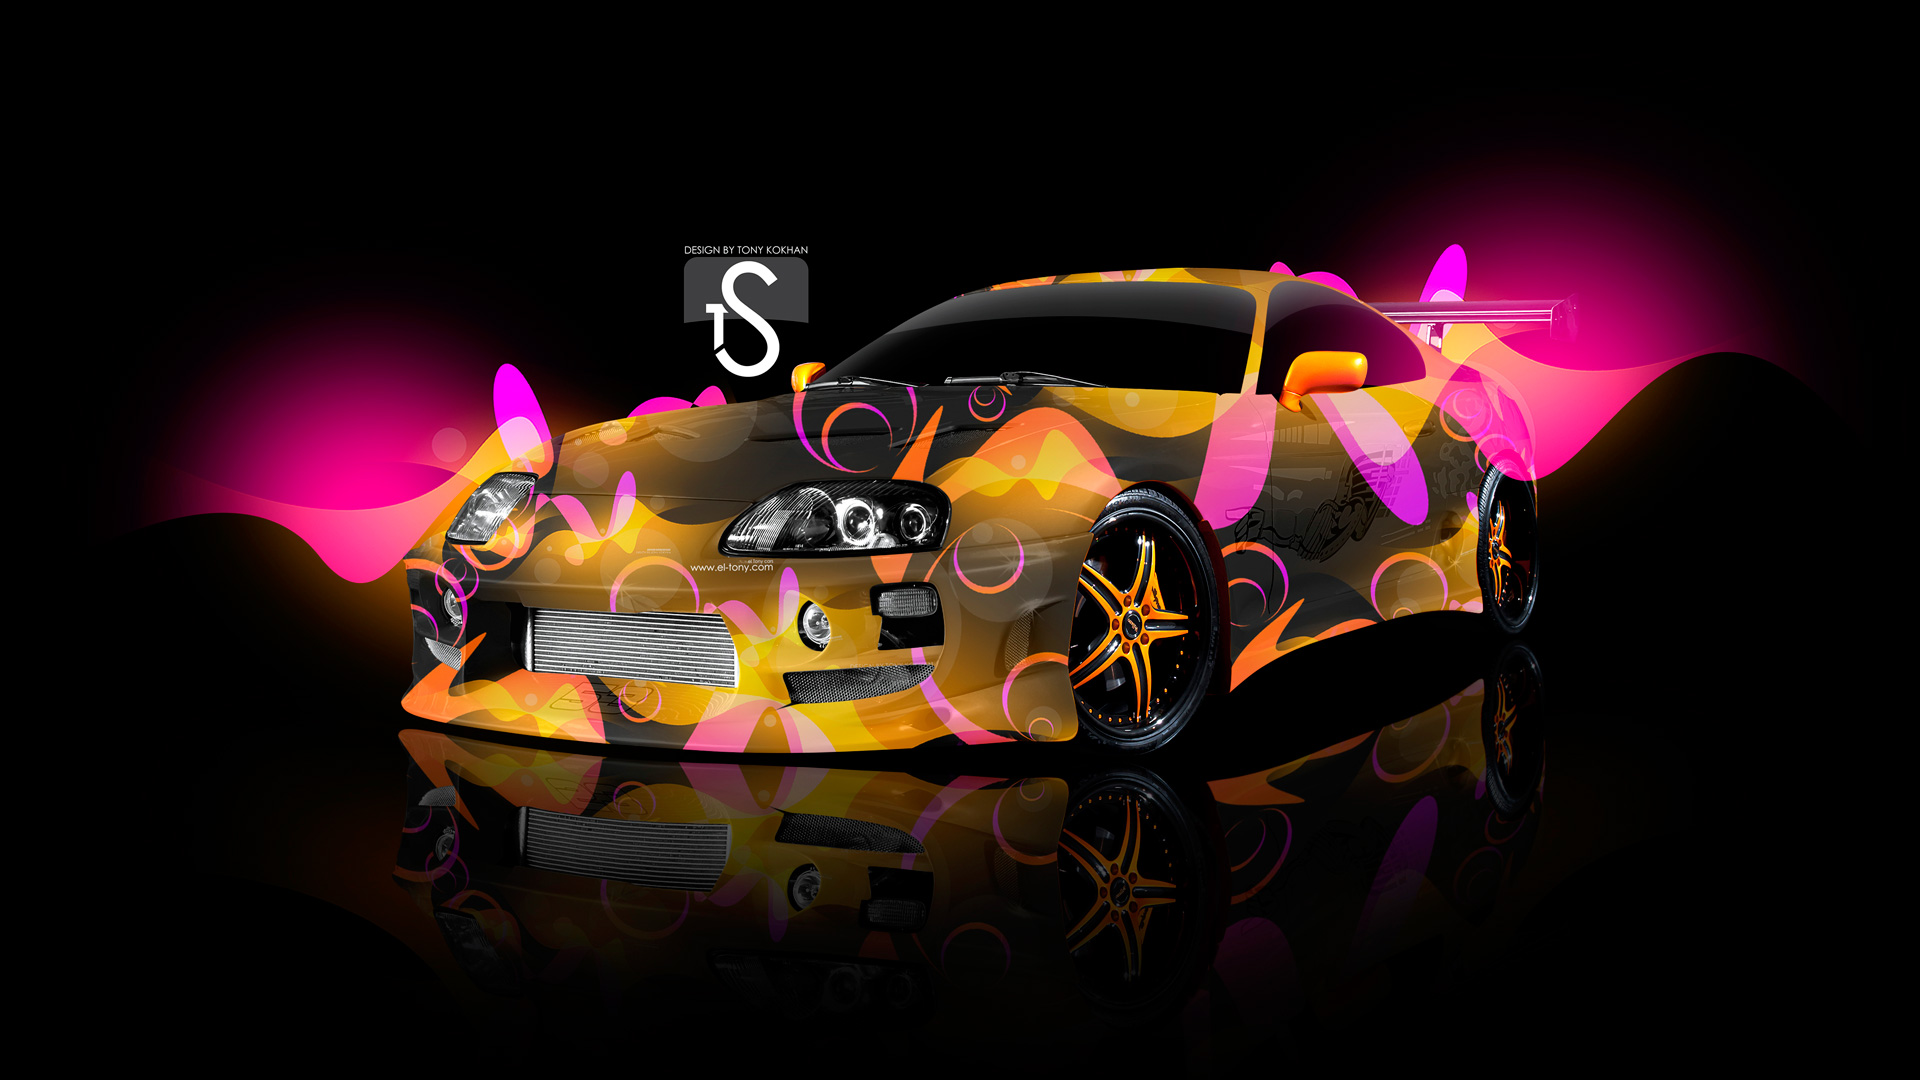 Superb Toyota Supra Sweet Abstract Car 2013 Multicolors HD